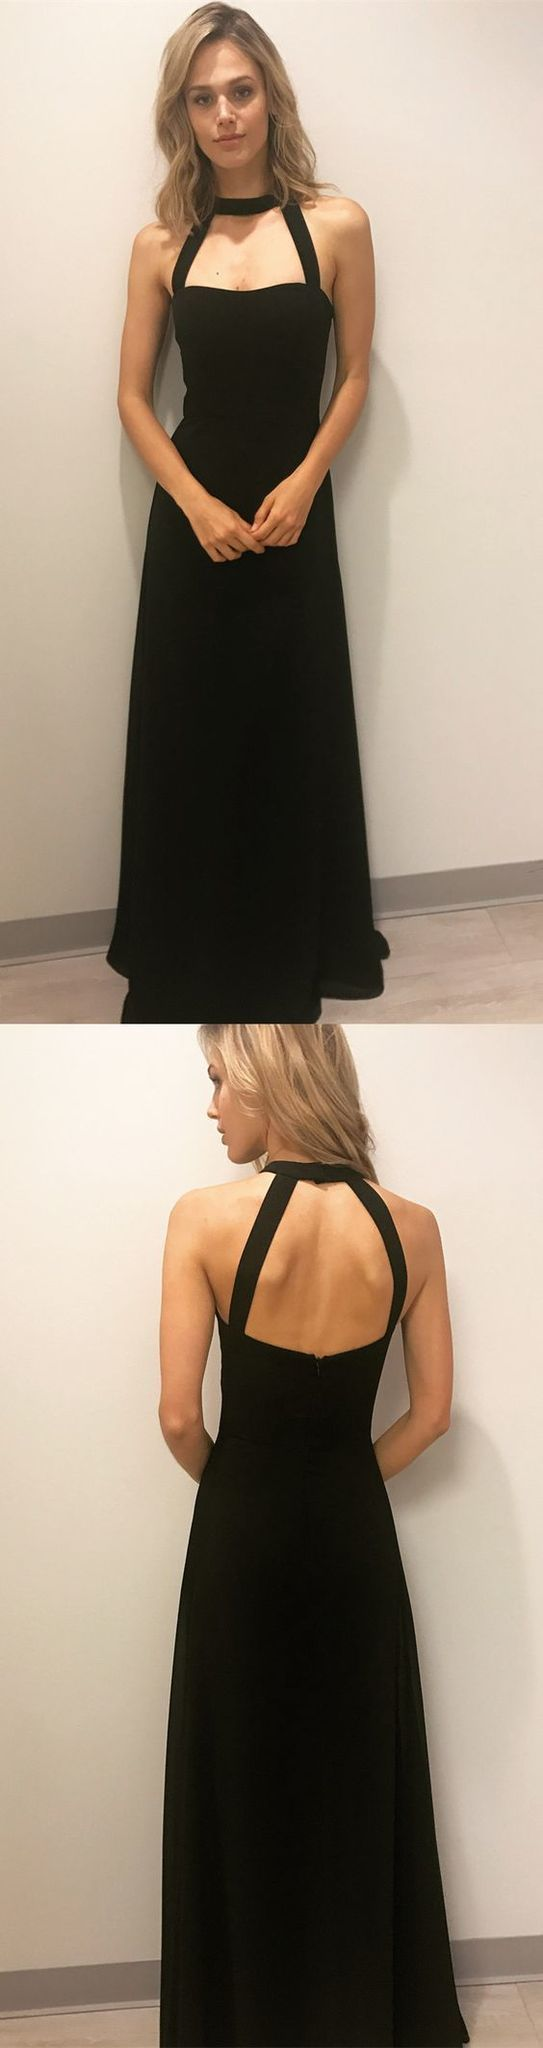 Long black prom dresses, party dresses, formal evening dressse 1142